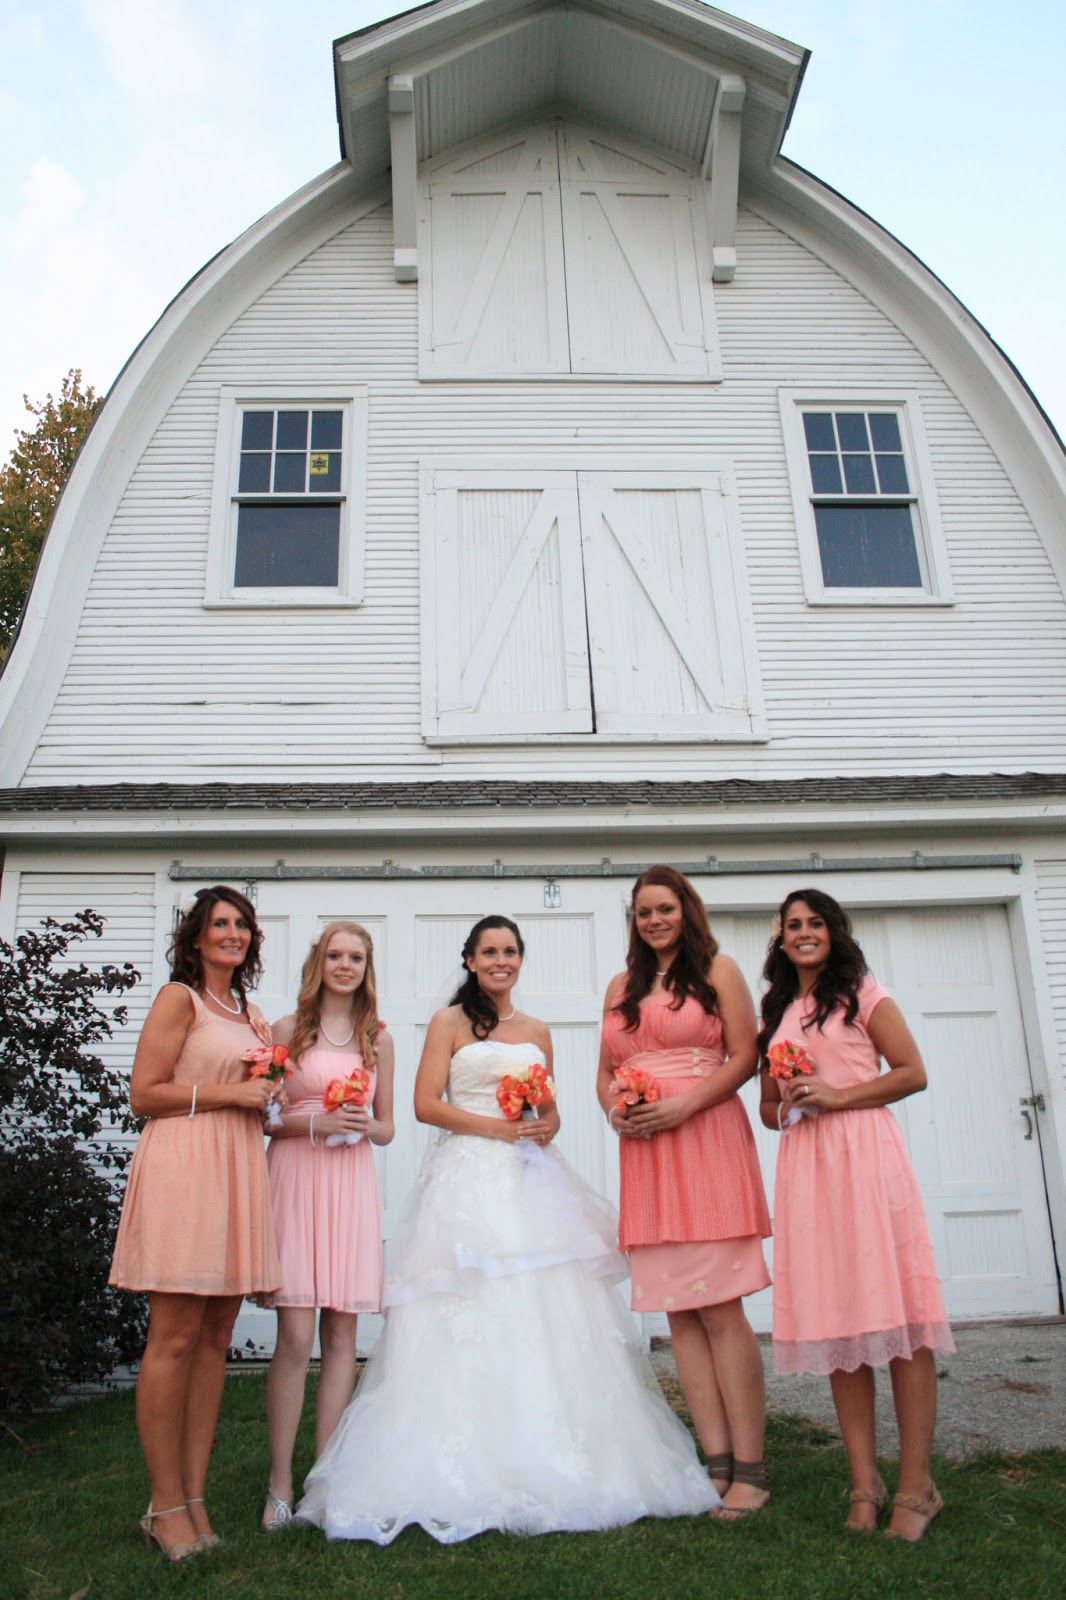 we were able to have a photo session at a beautiful white barn nearby